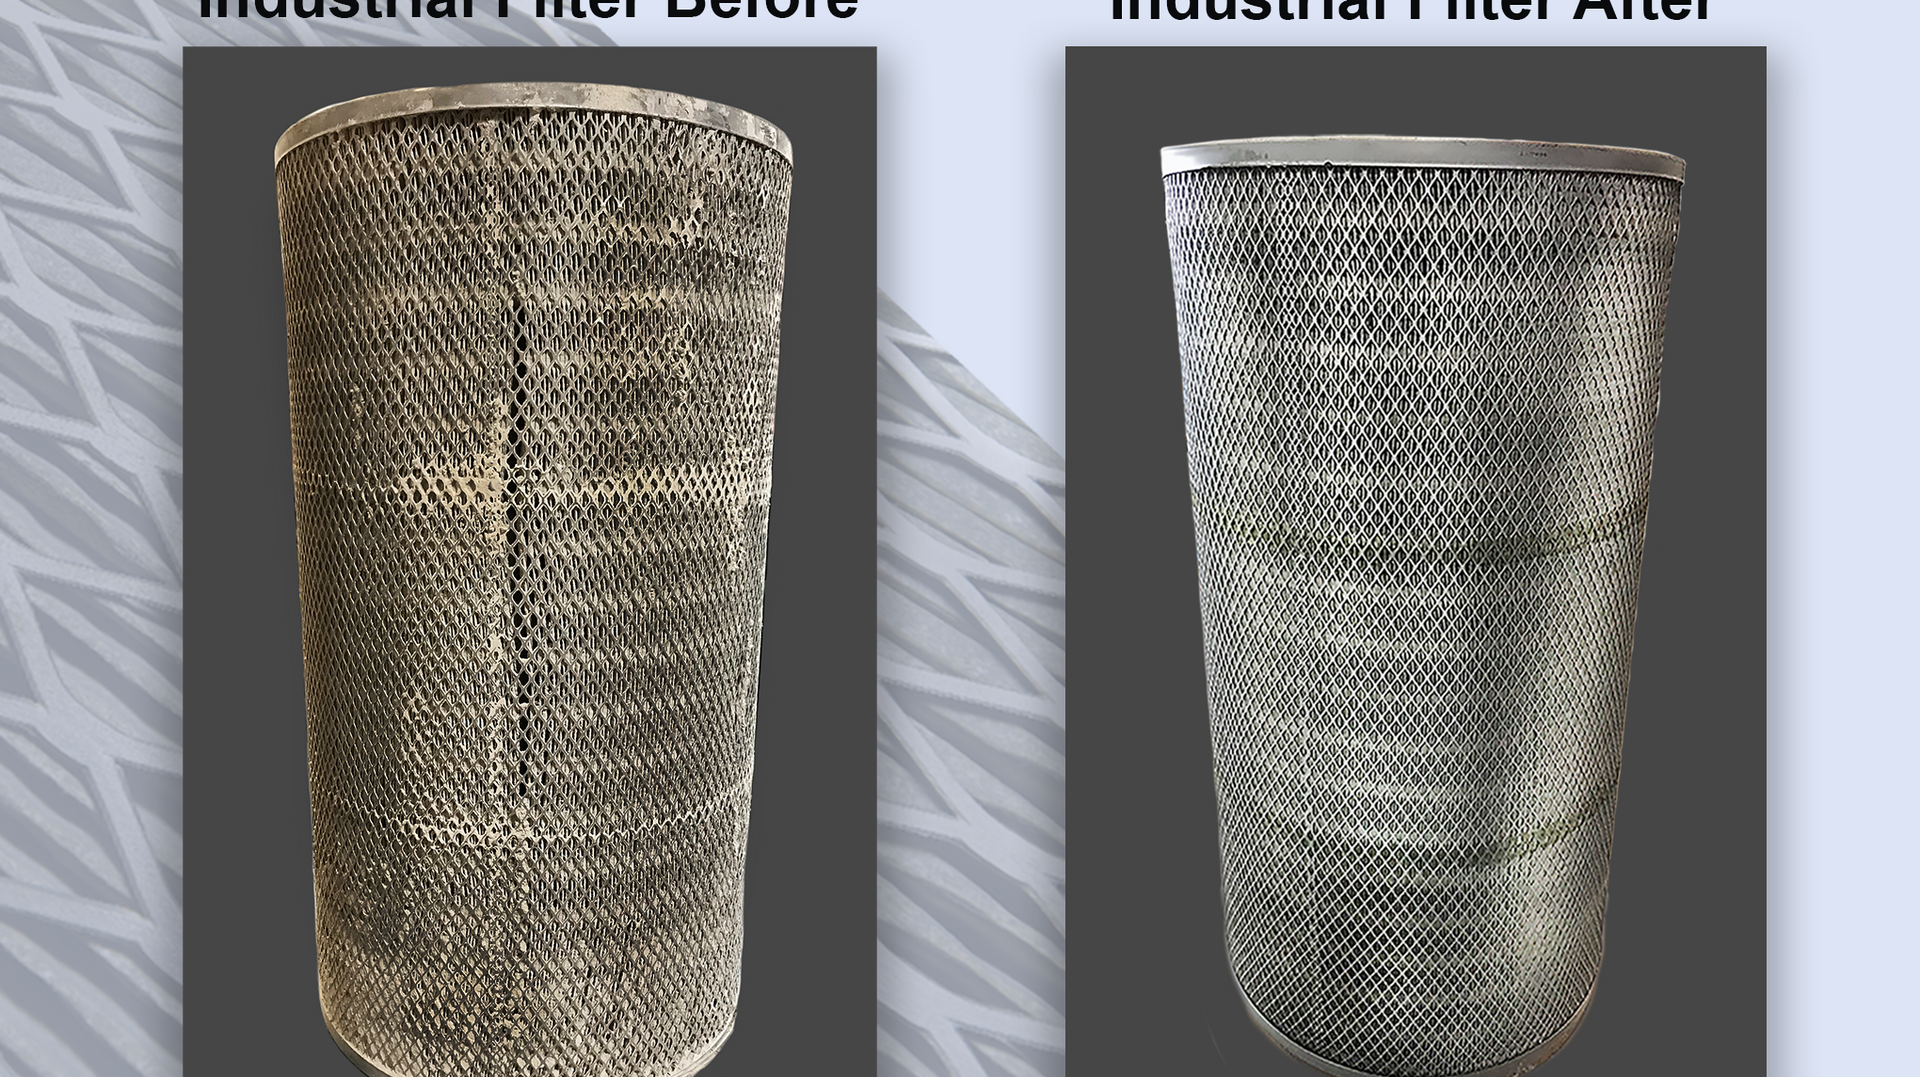 Industrial Filters Before-After 6-12.png